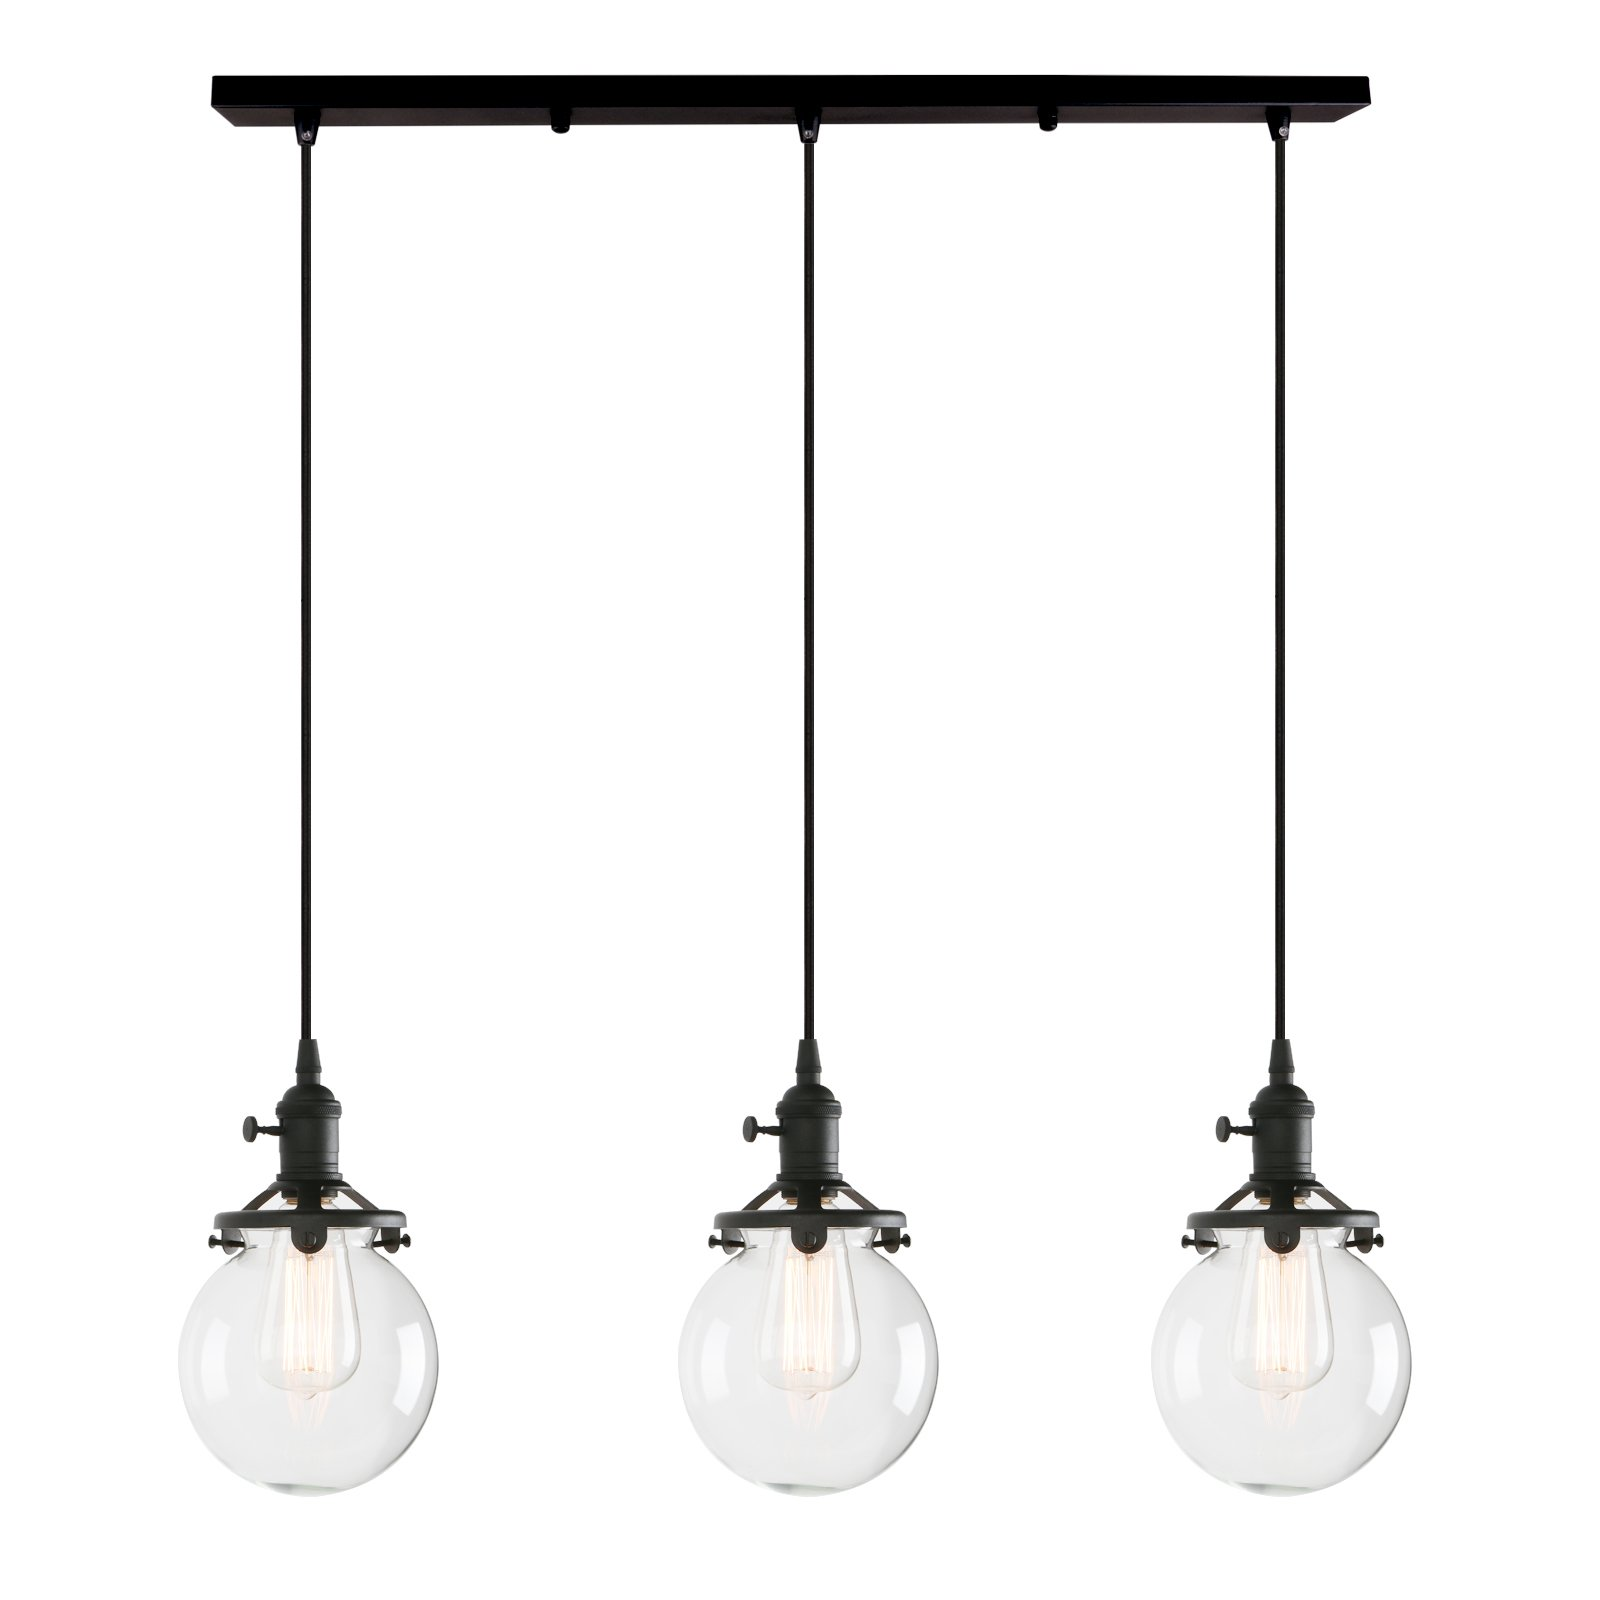 Permo Vintage Rustic Industrial 3-Lights Kitchen Island Chandelier Triple 3 Heads Pendant Hanging Ceiling Lighting Fixture with Mini 5.9'' Round Clear Glass Globe Shade (Black)